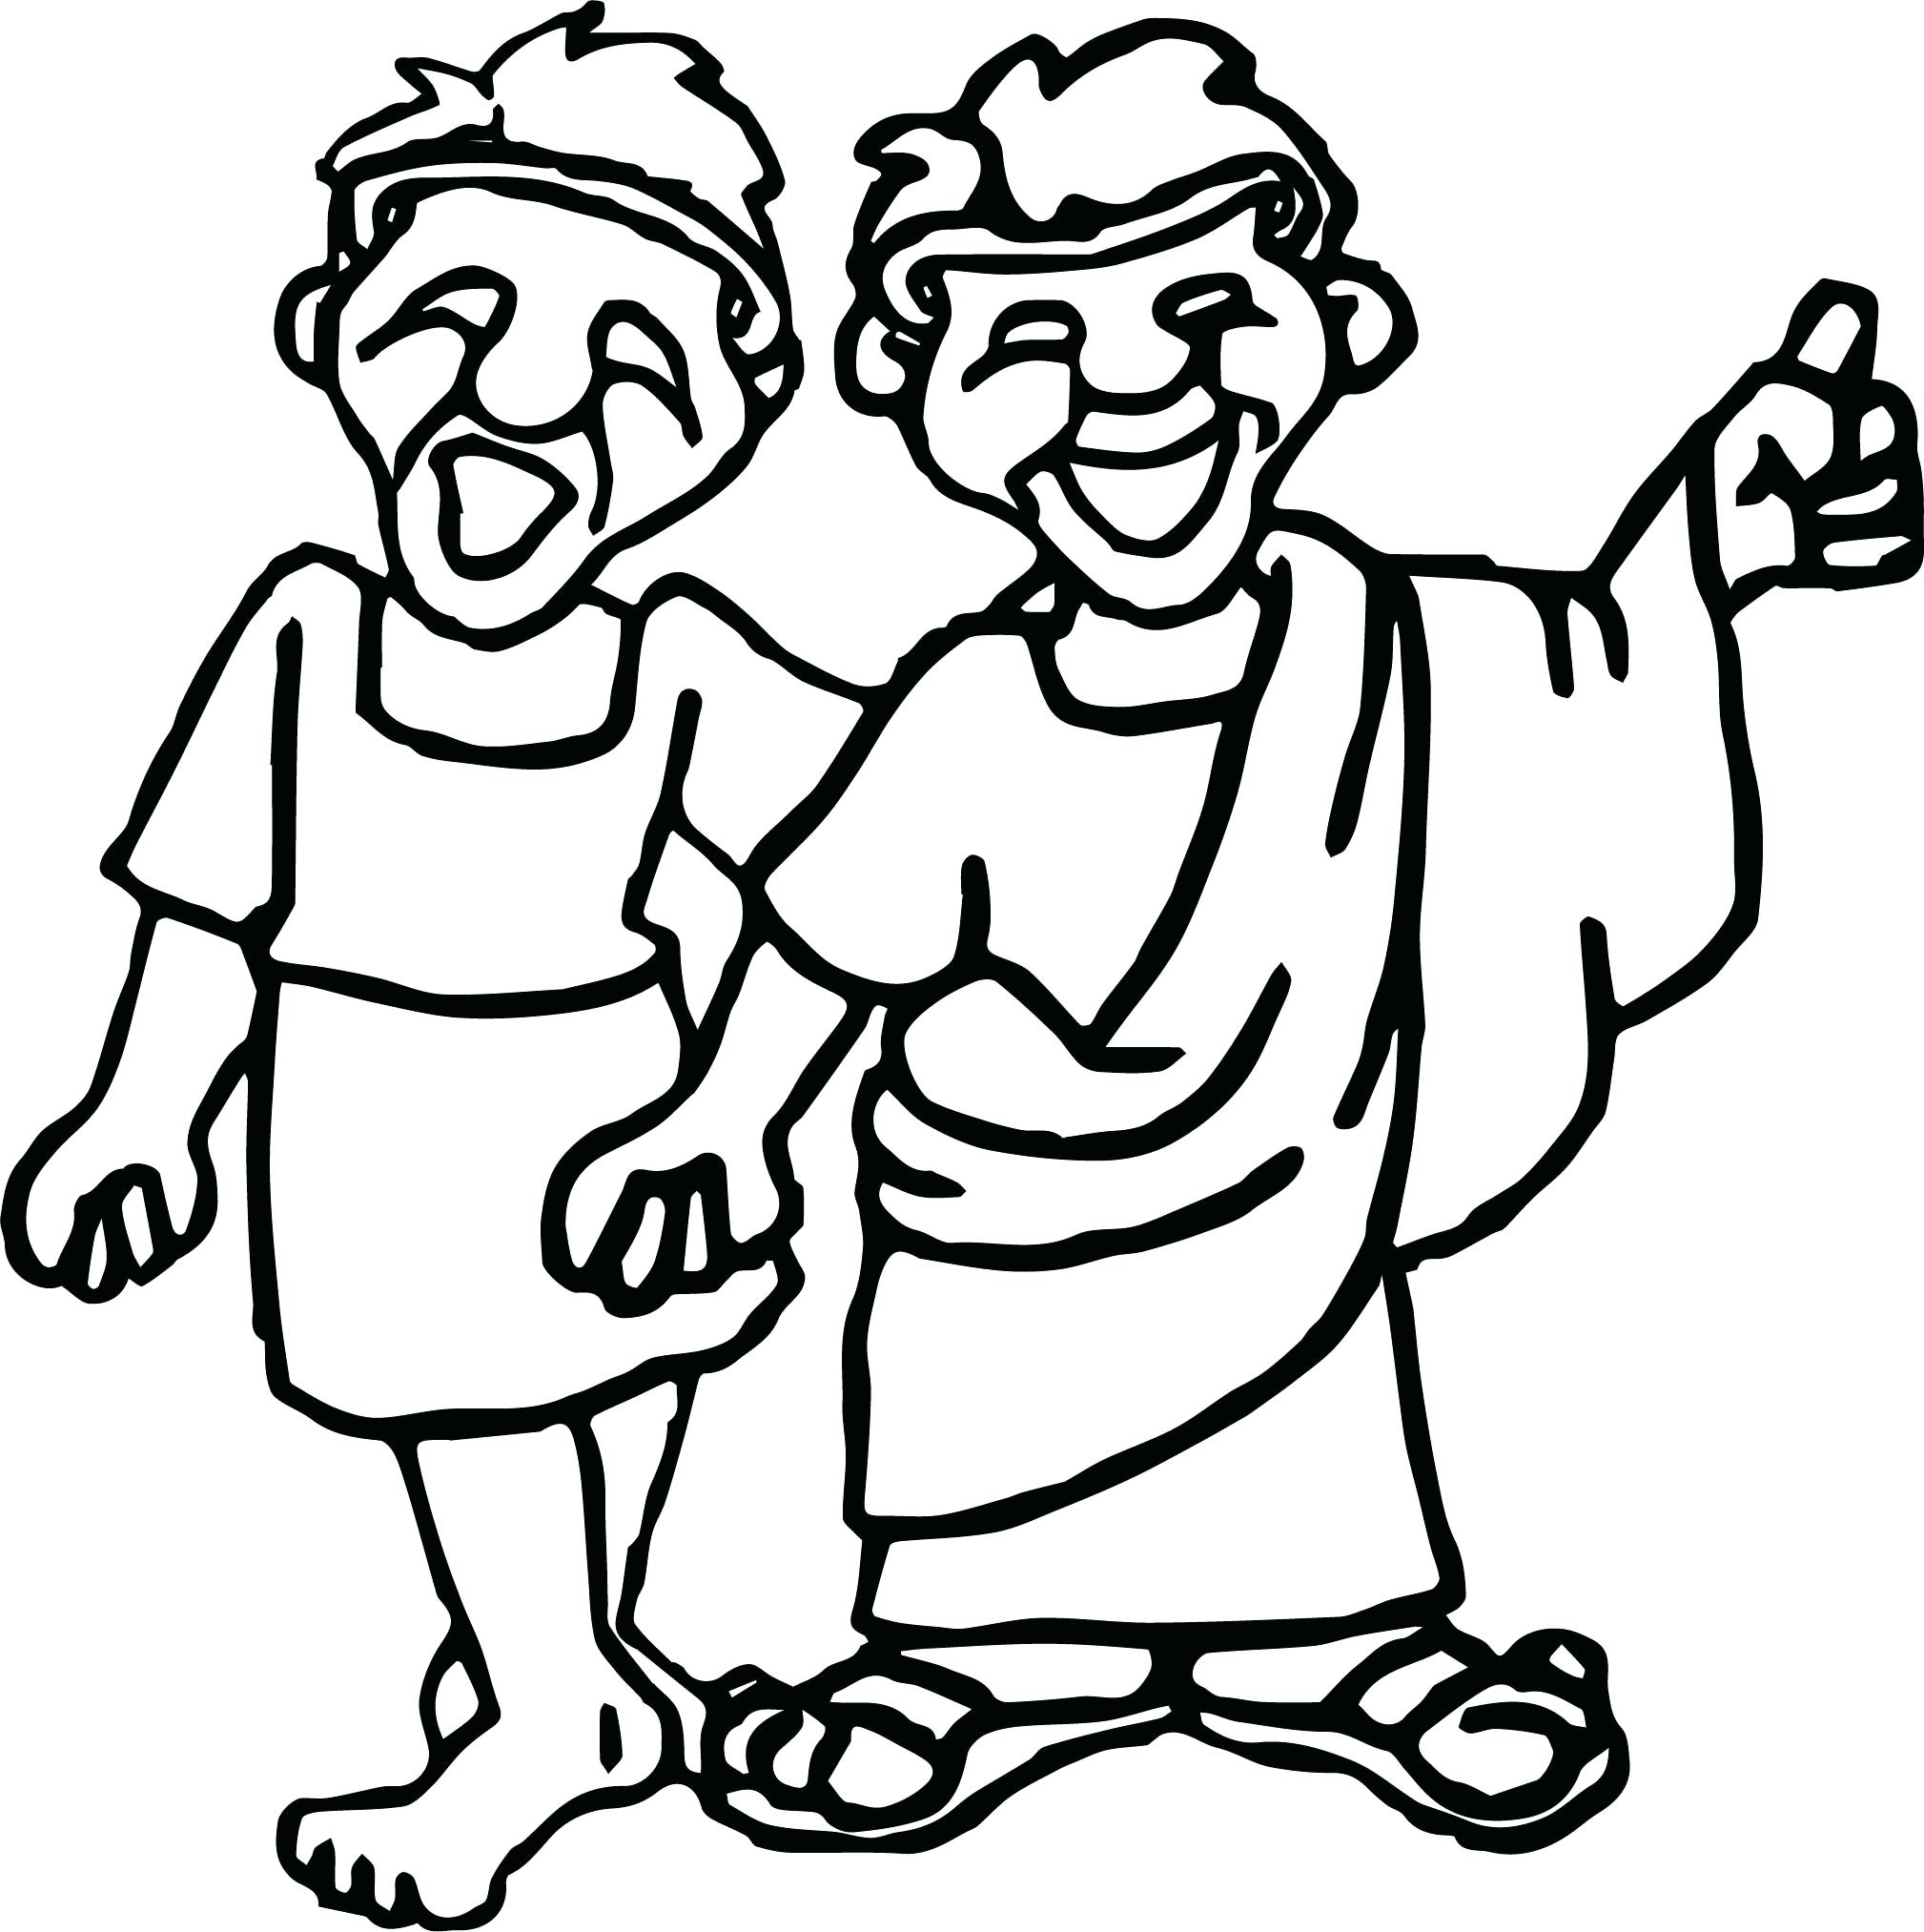 2018x2026 Just Arrived Julius Caesar Coloring Pages Attractive Ancient Rome